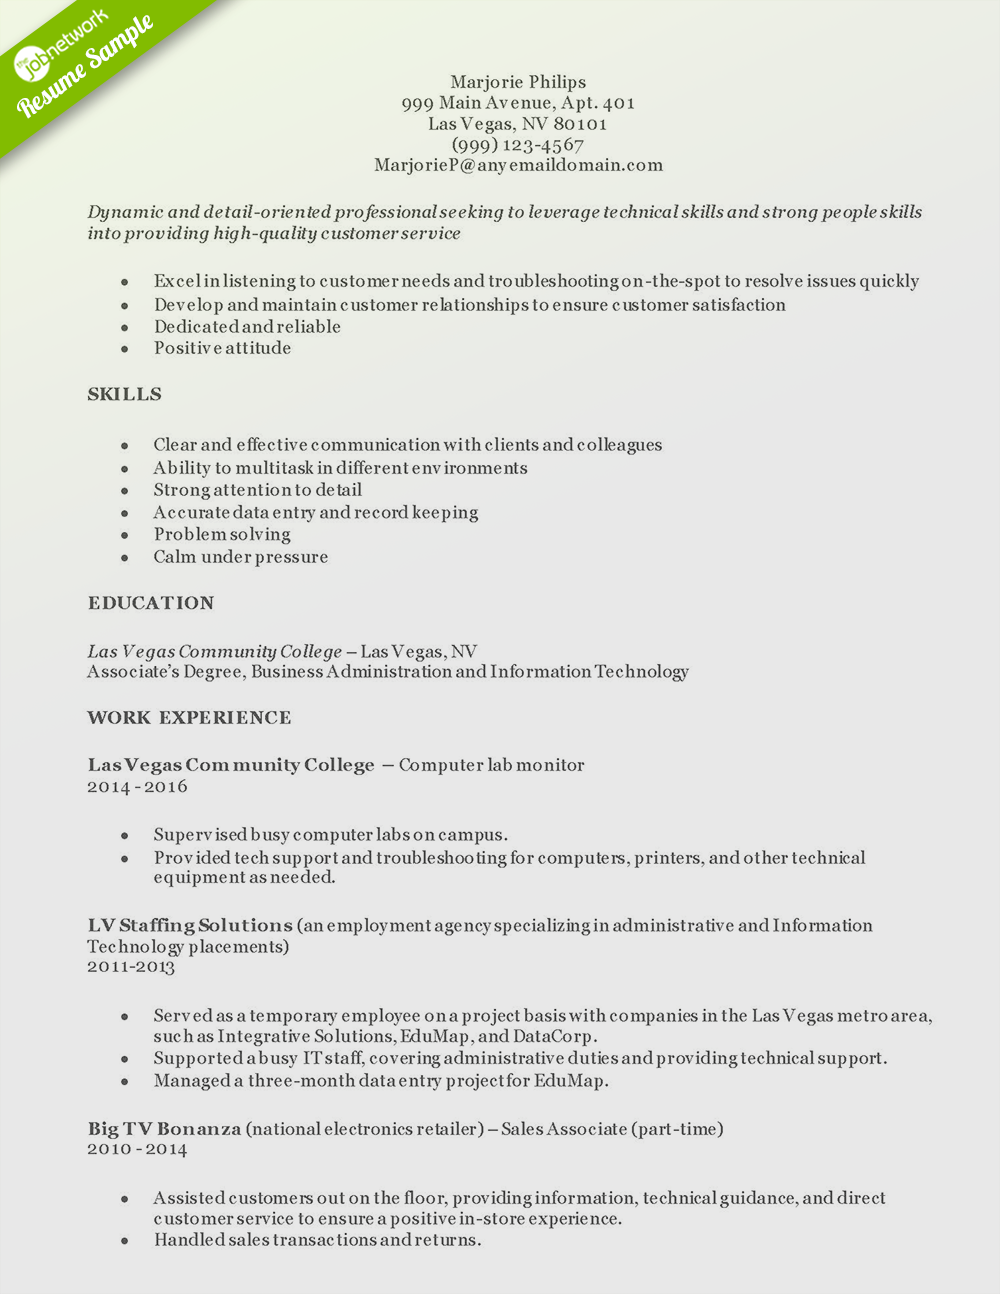 customer service resume - Entry Level Customer Service Resume